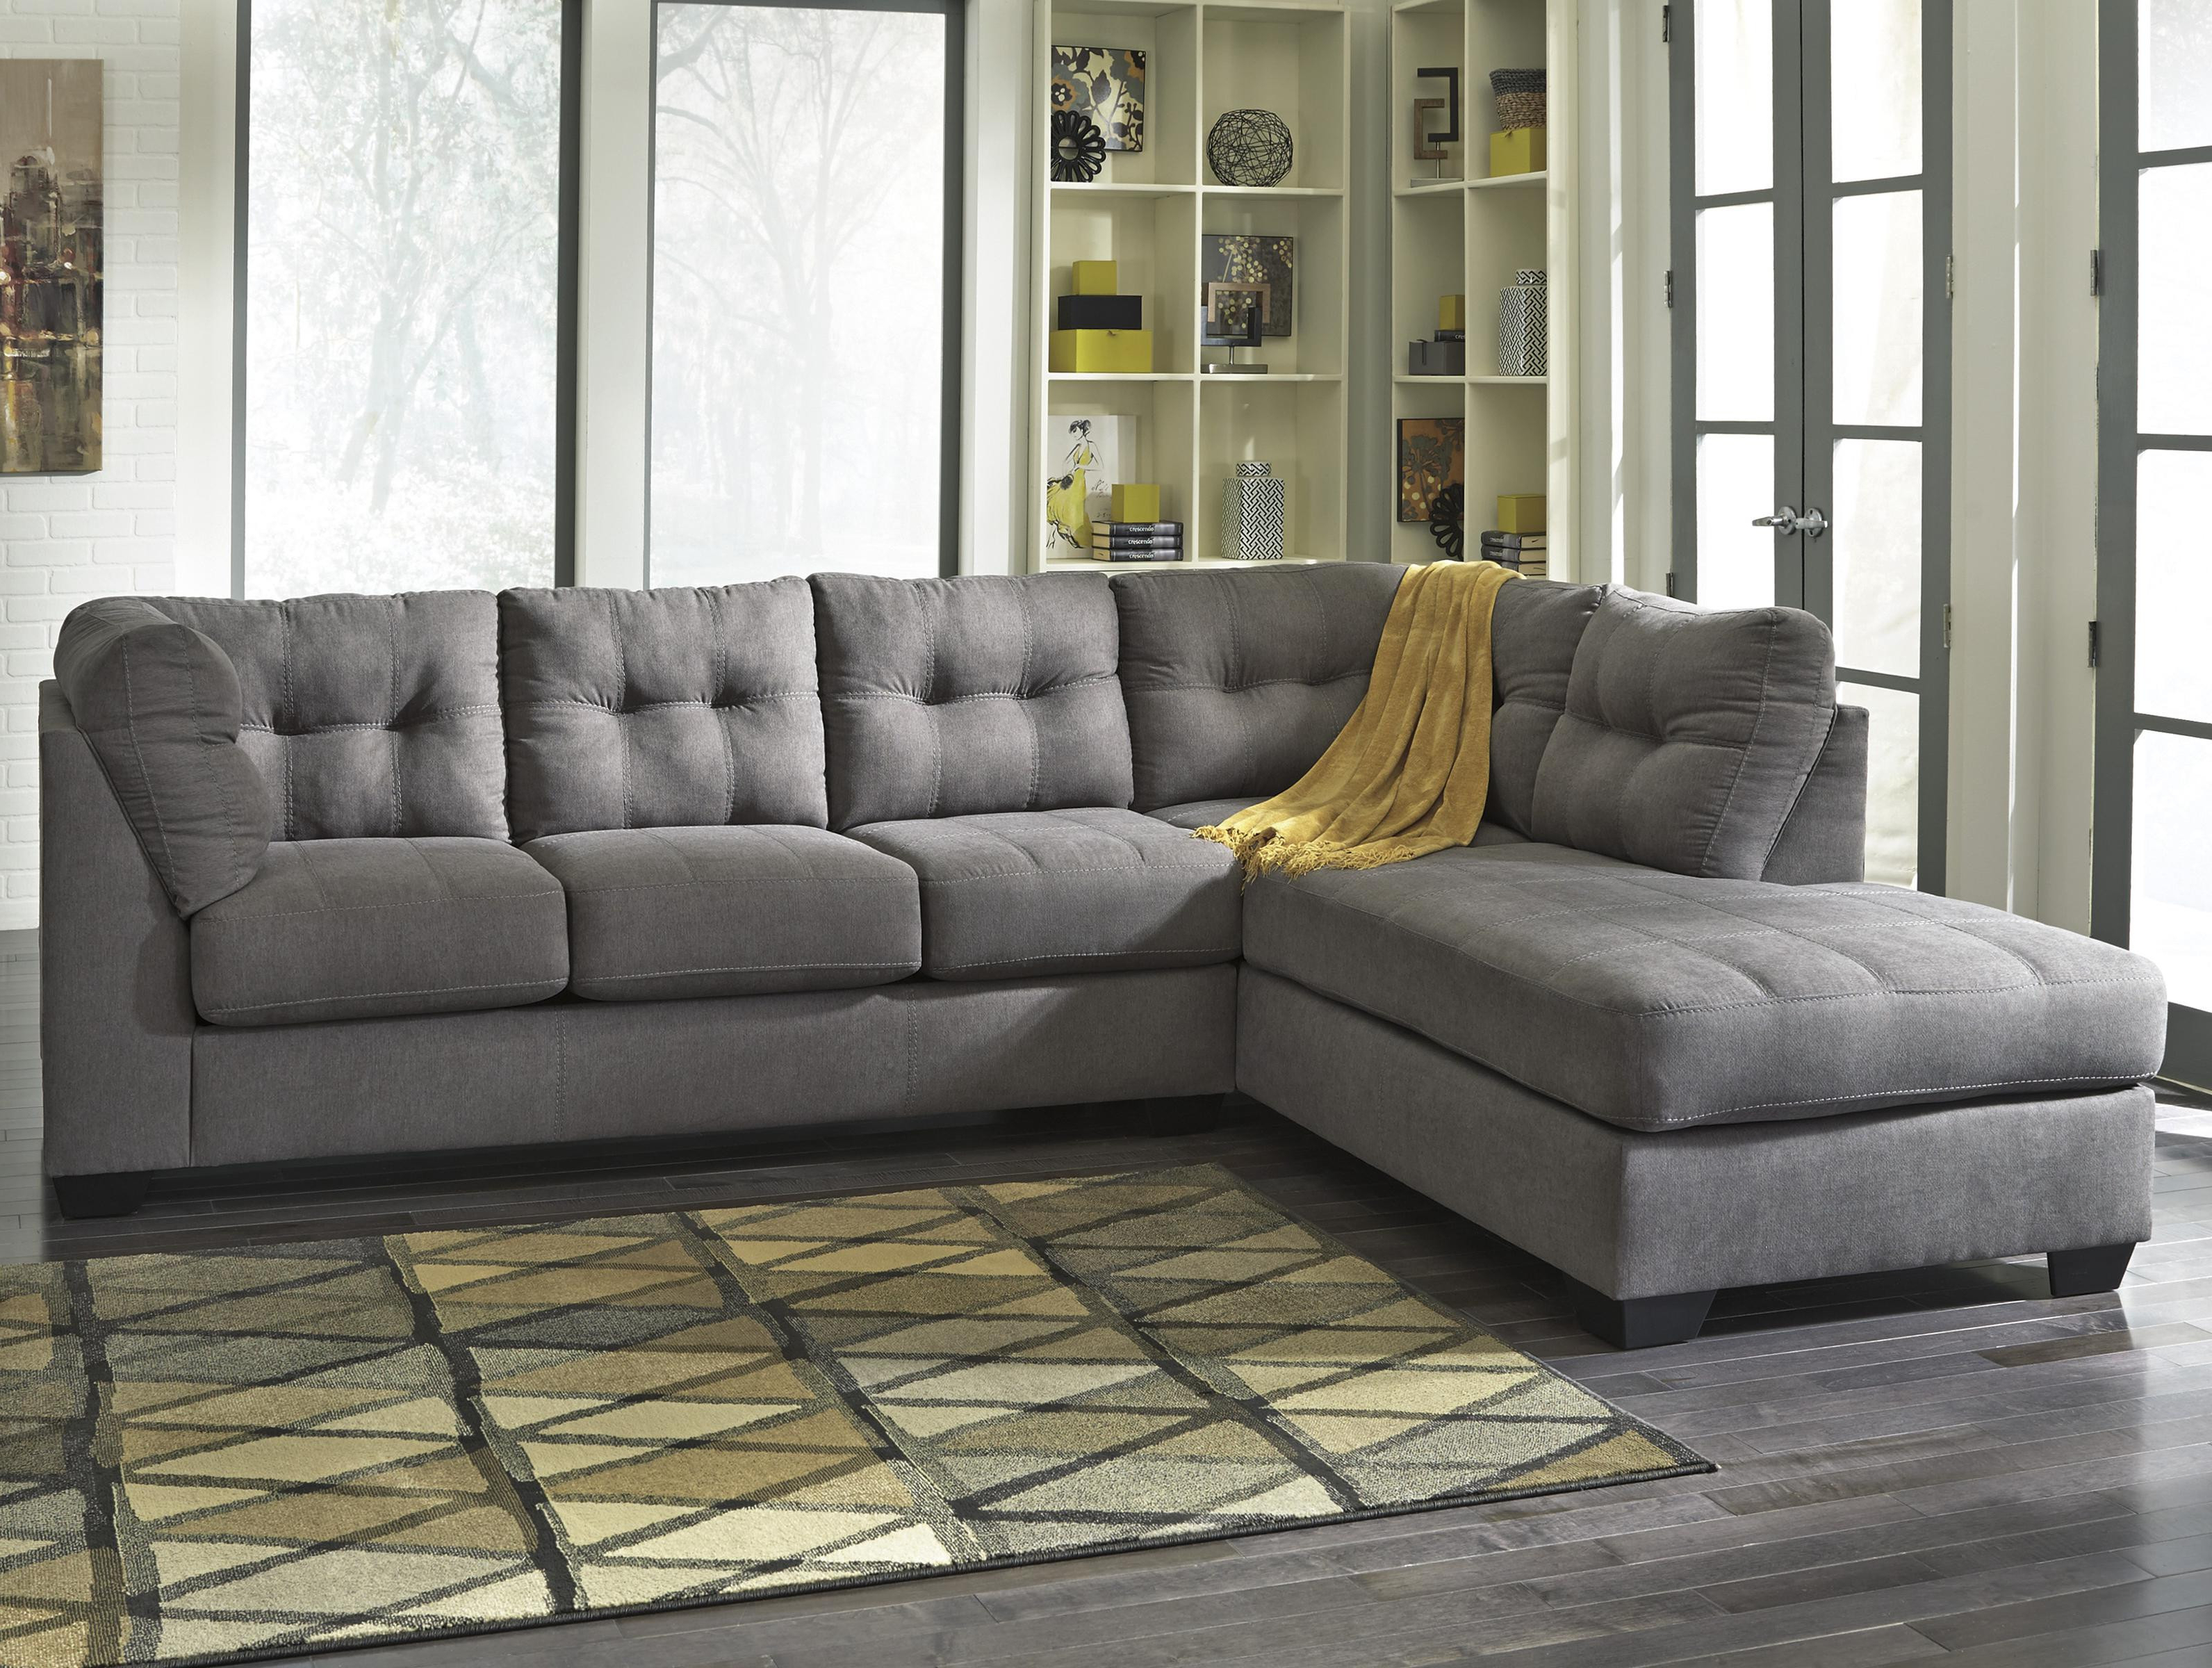 New 2 Piece Sectional With Chaise Lounge – Buildsimplehome In Favorite Jobs Oat 2 Piece Sectionals With Left Facing Chaise (Gallery 13 of 20)